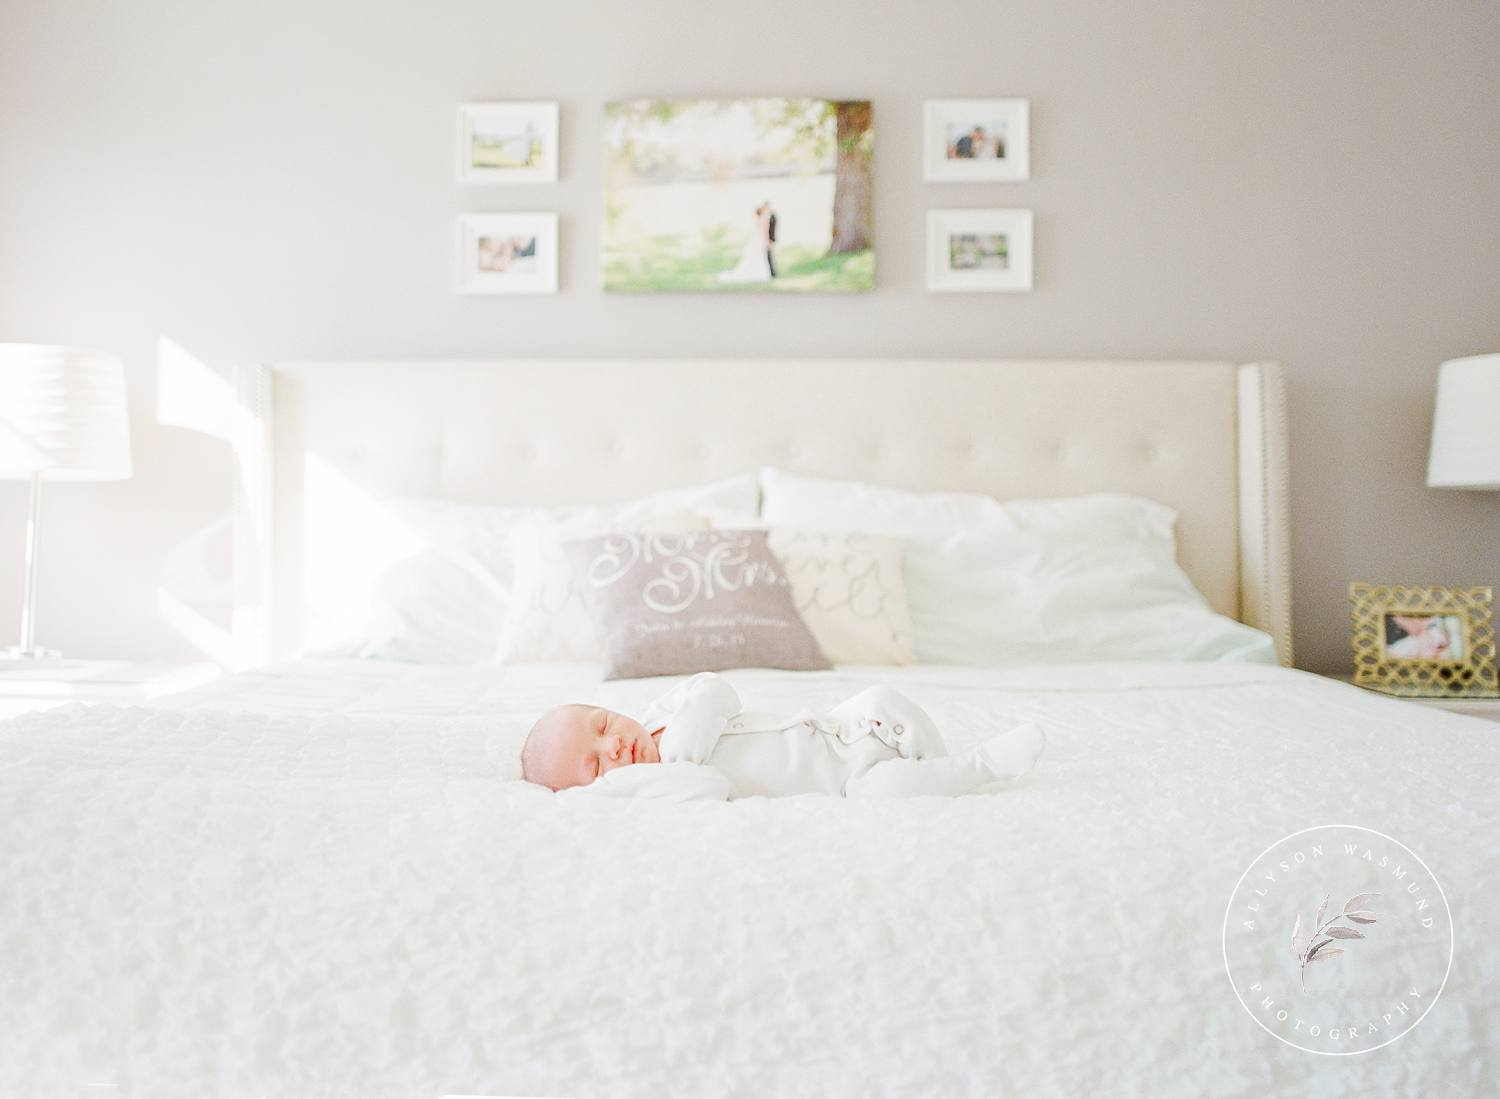 Newborn baby Jacob lays sleeping on his parents bed during their in-home newborn session in Maple Grove, Minnesota with Allyson Wasmund Photography.